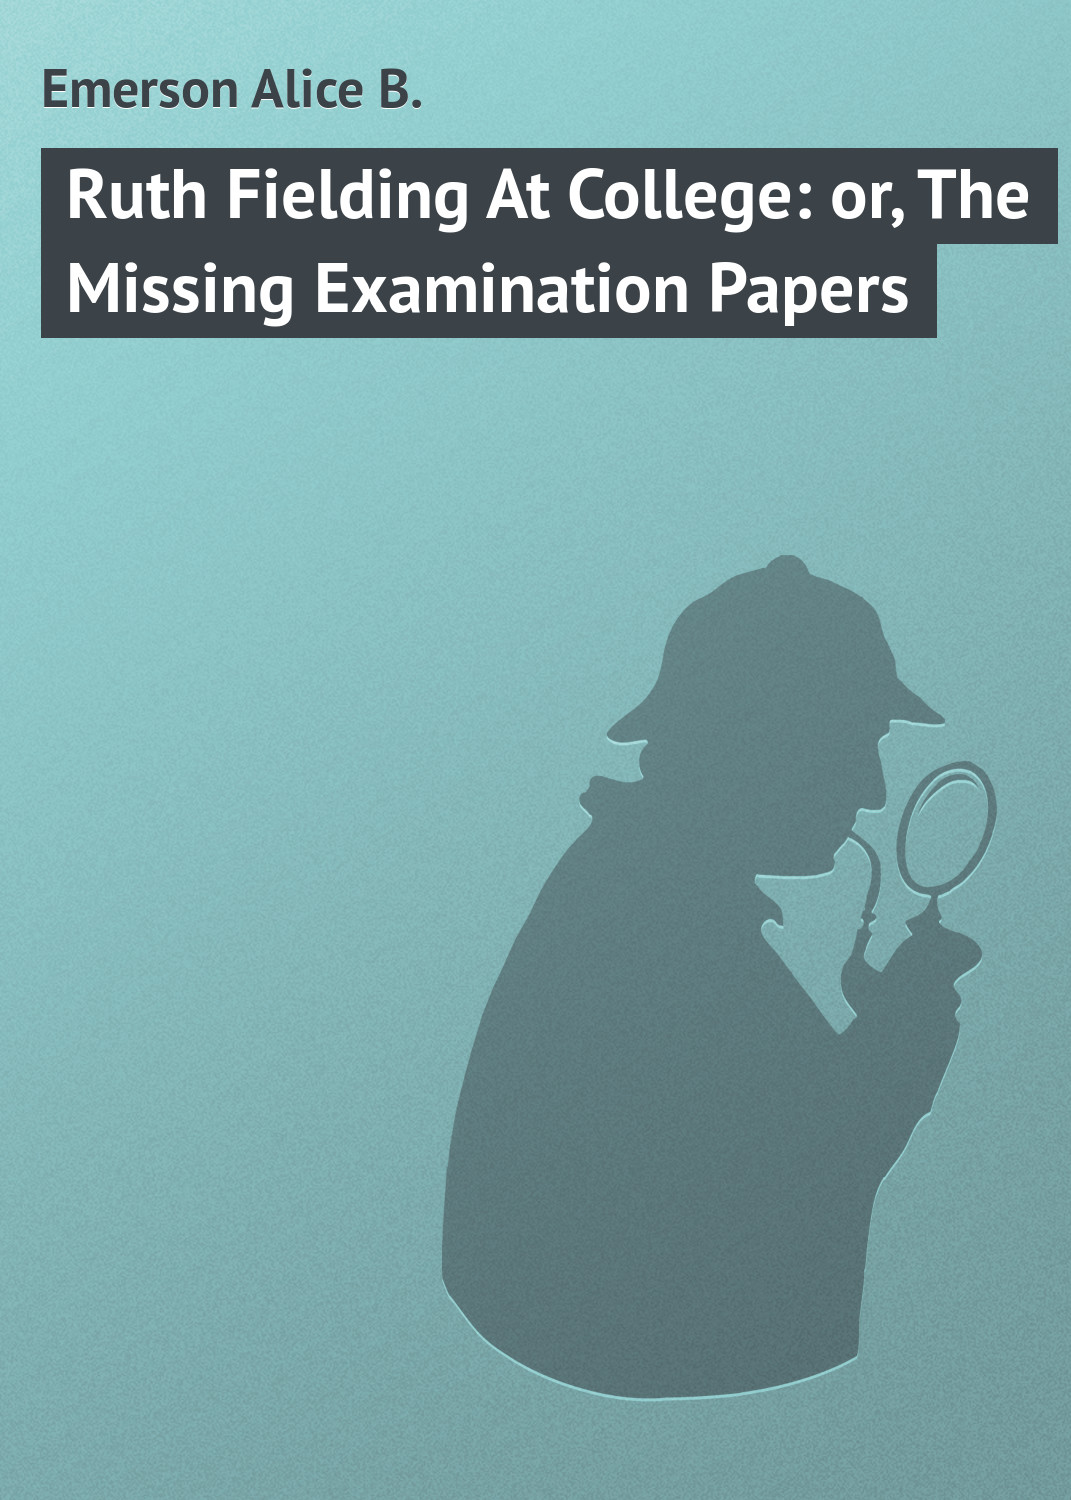 Ruth Fielding At College: or, The Missing Examination Papers